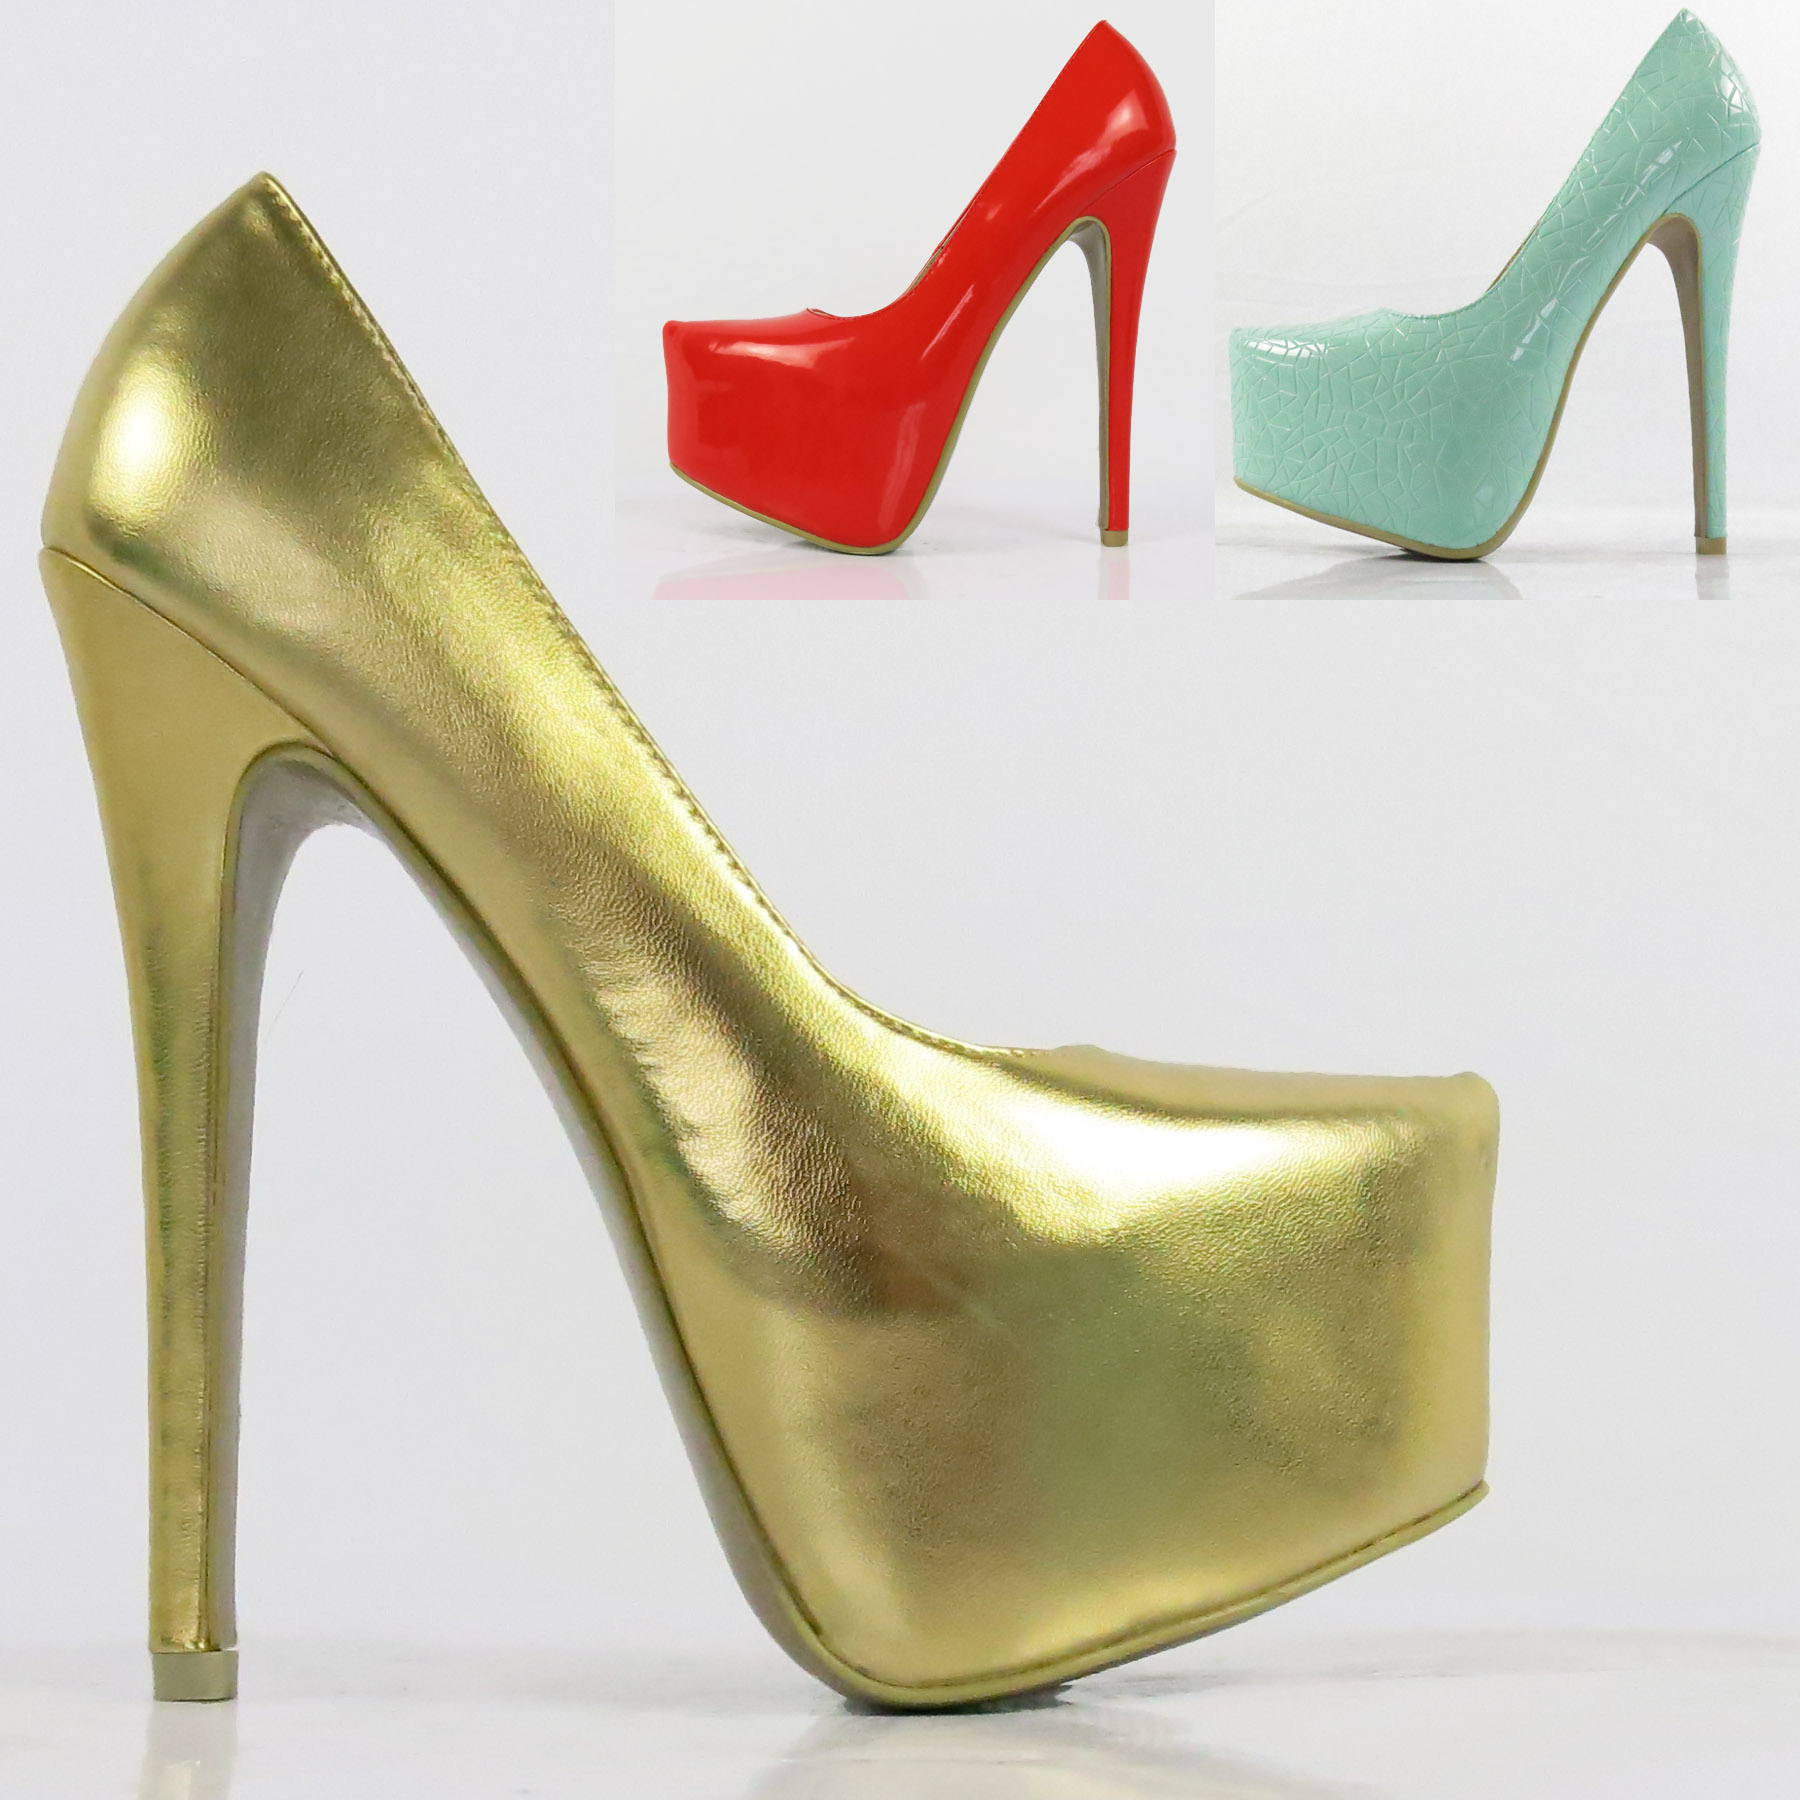 2015 16cm women's ultra high heels shoes t wedding shoes party shoes red gold цены онлайн